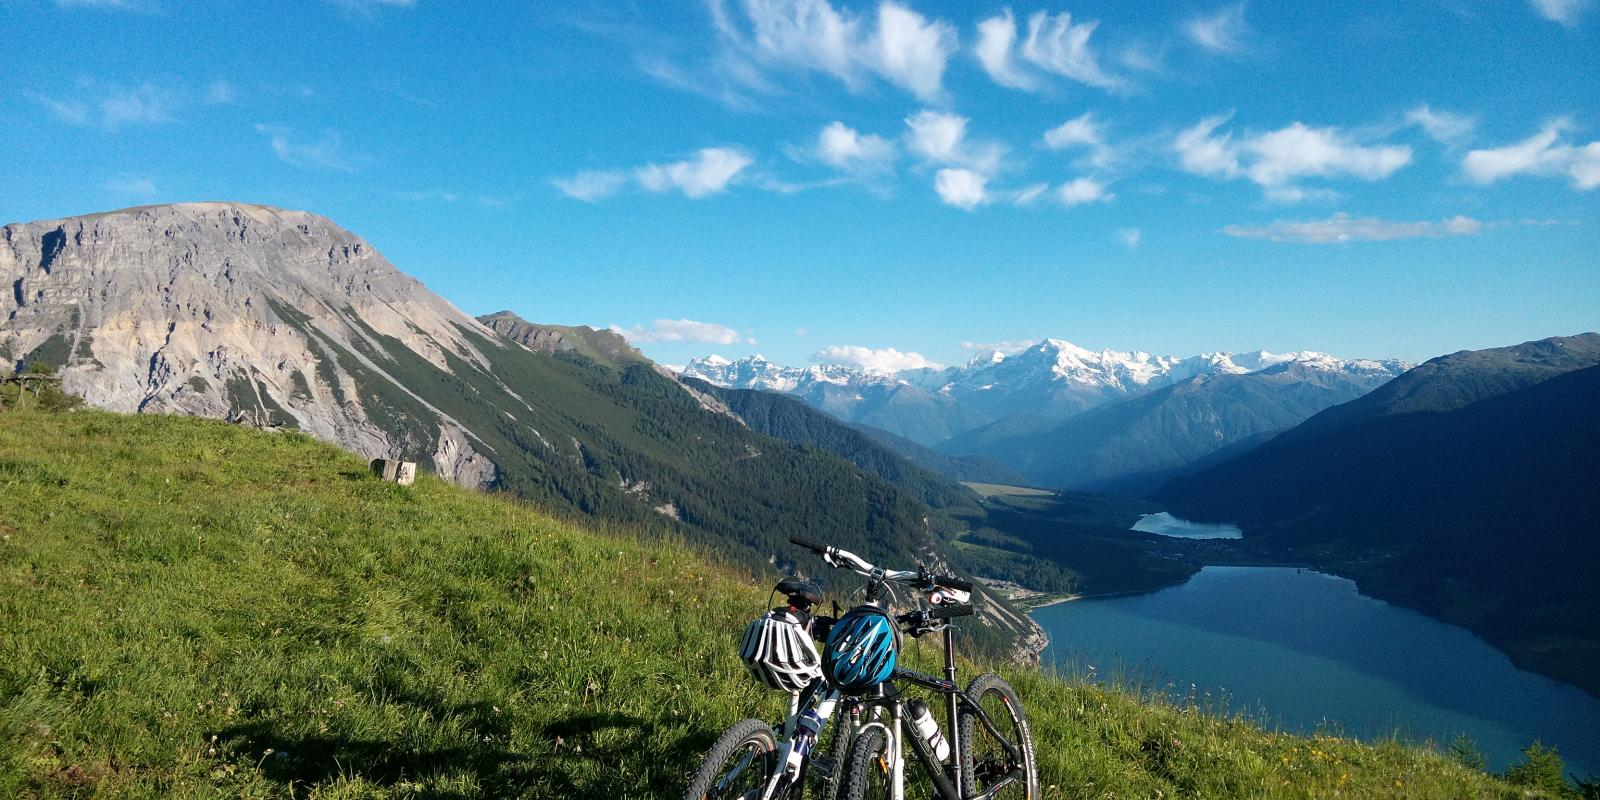 Biketour with view on the Resia lake